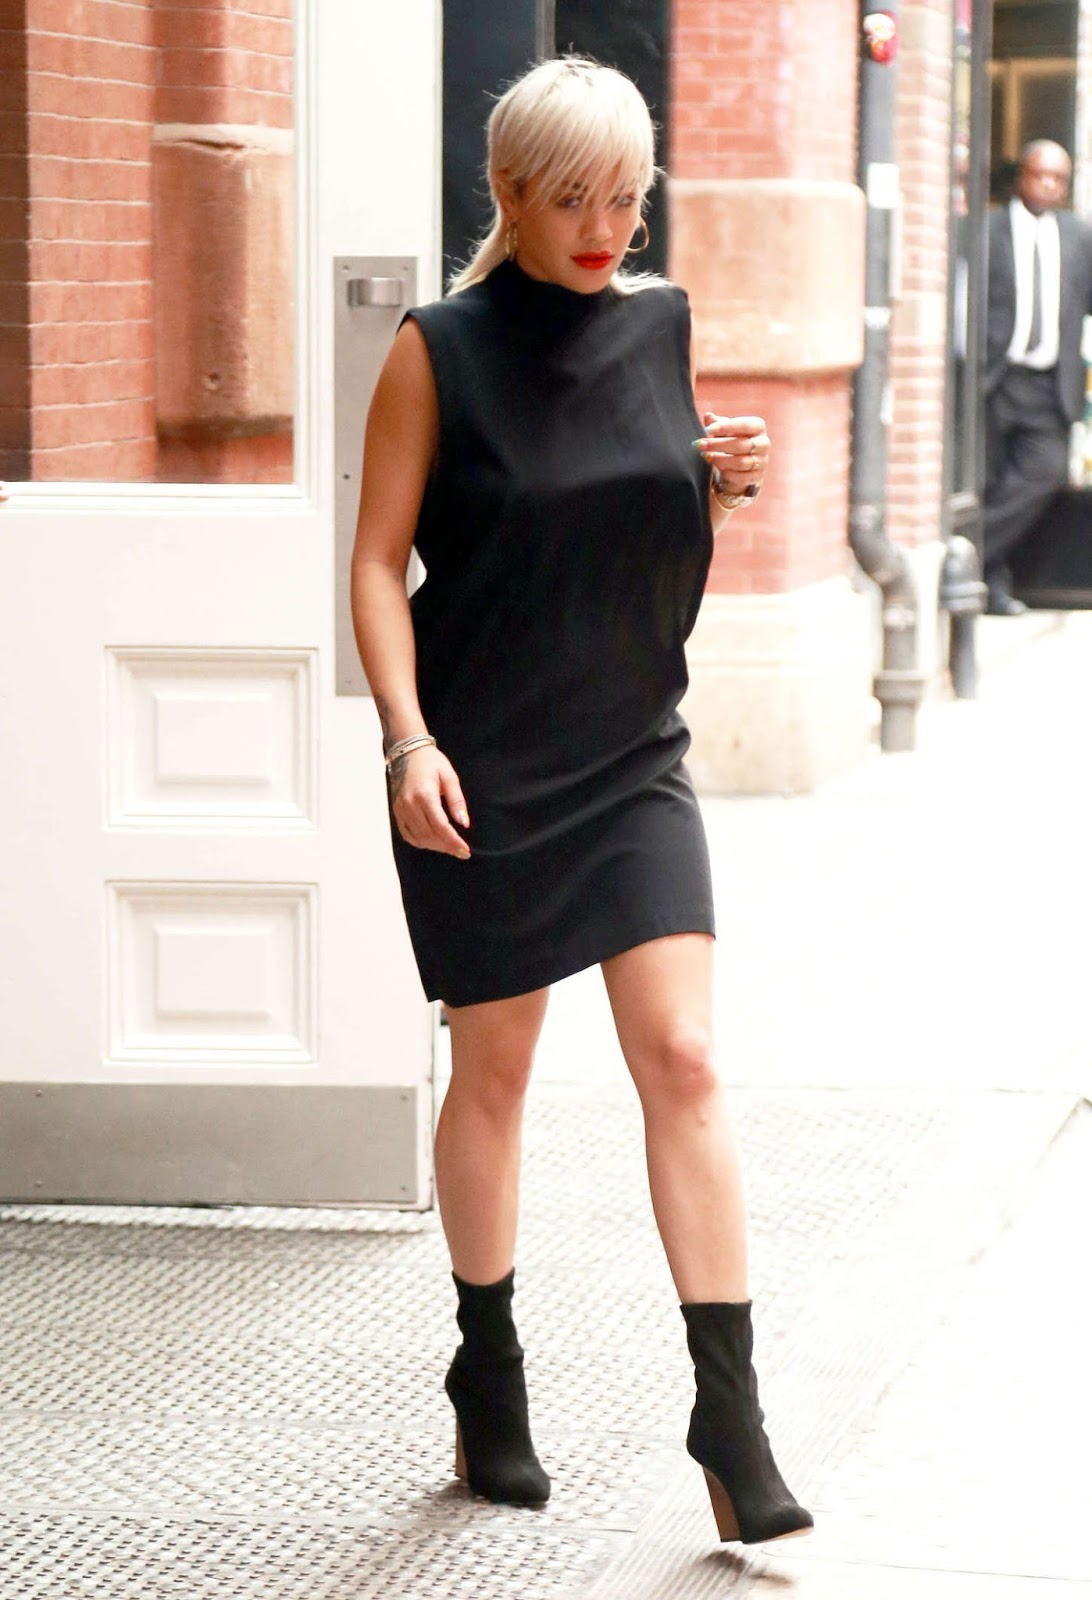 Rita Ora in Black Mini Dress out and about in NYC